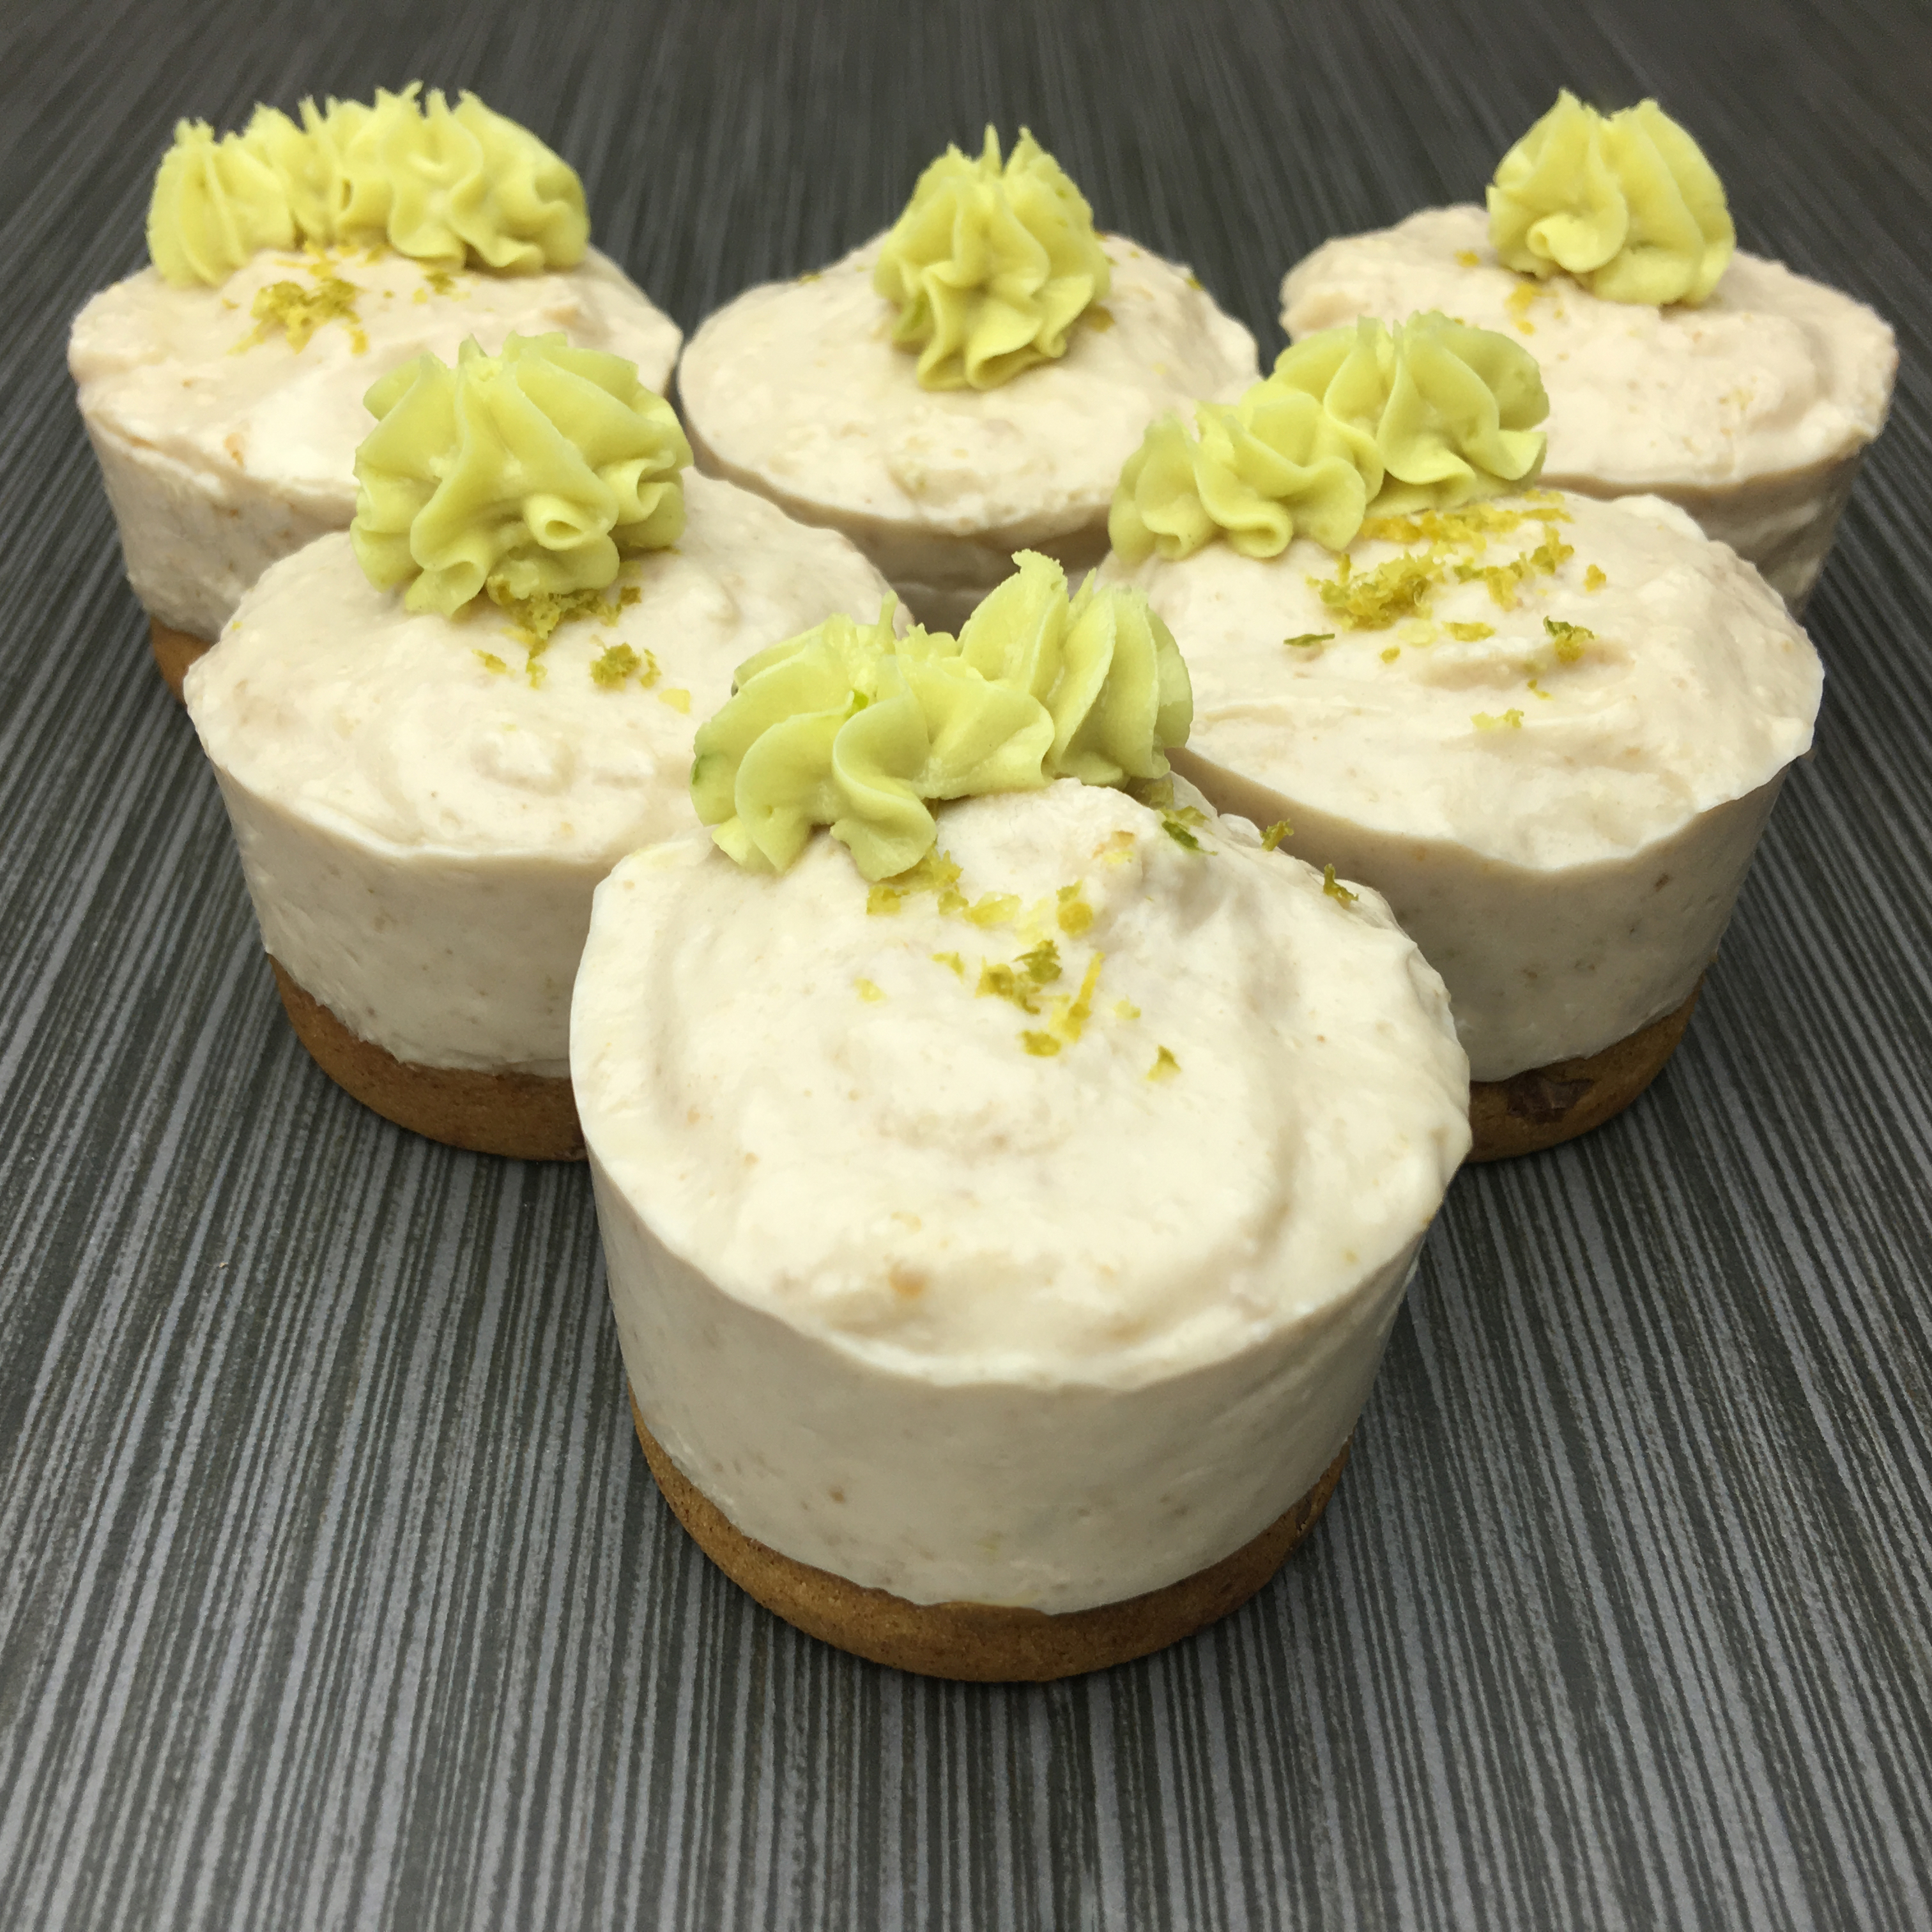 Gluten Free, Vegan, Key Lime No-Bake Cheesecake